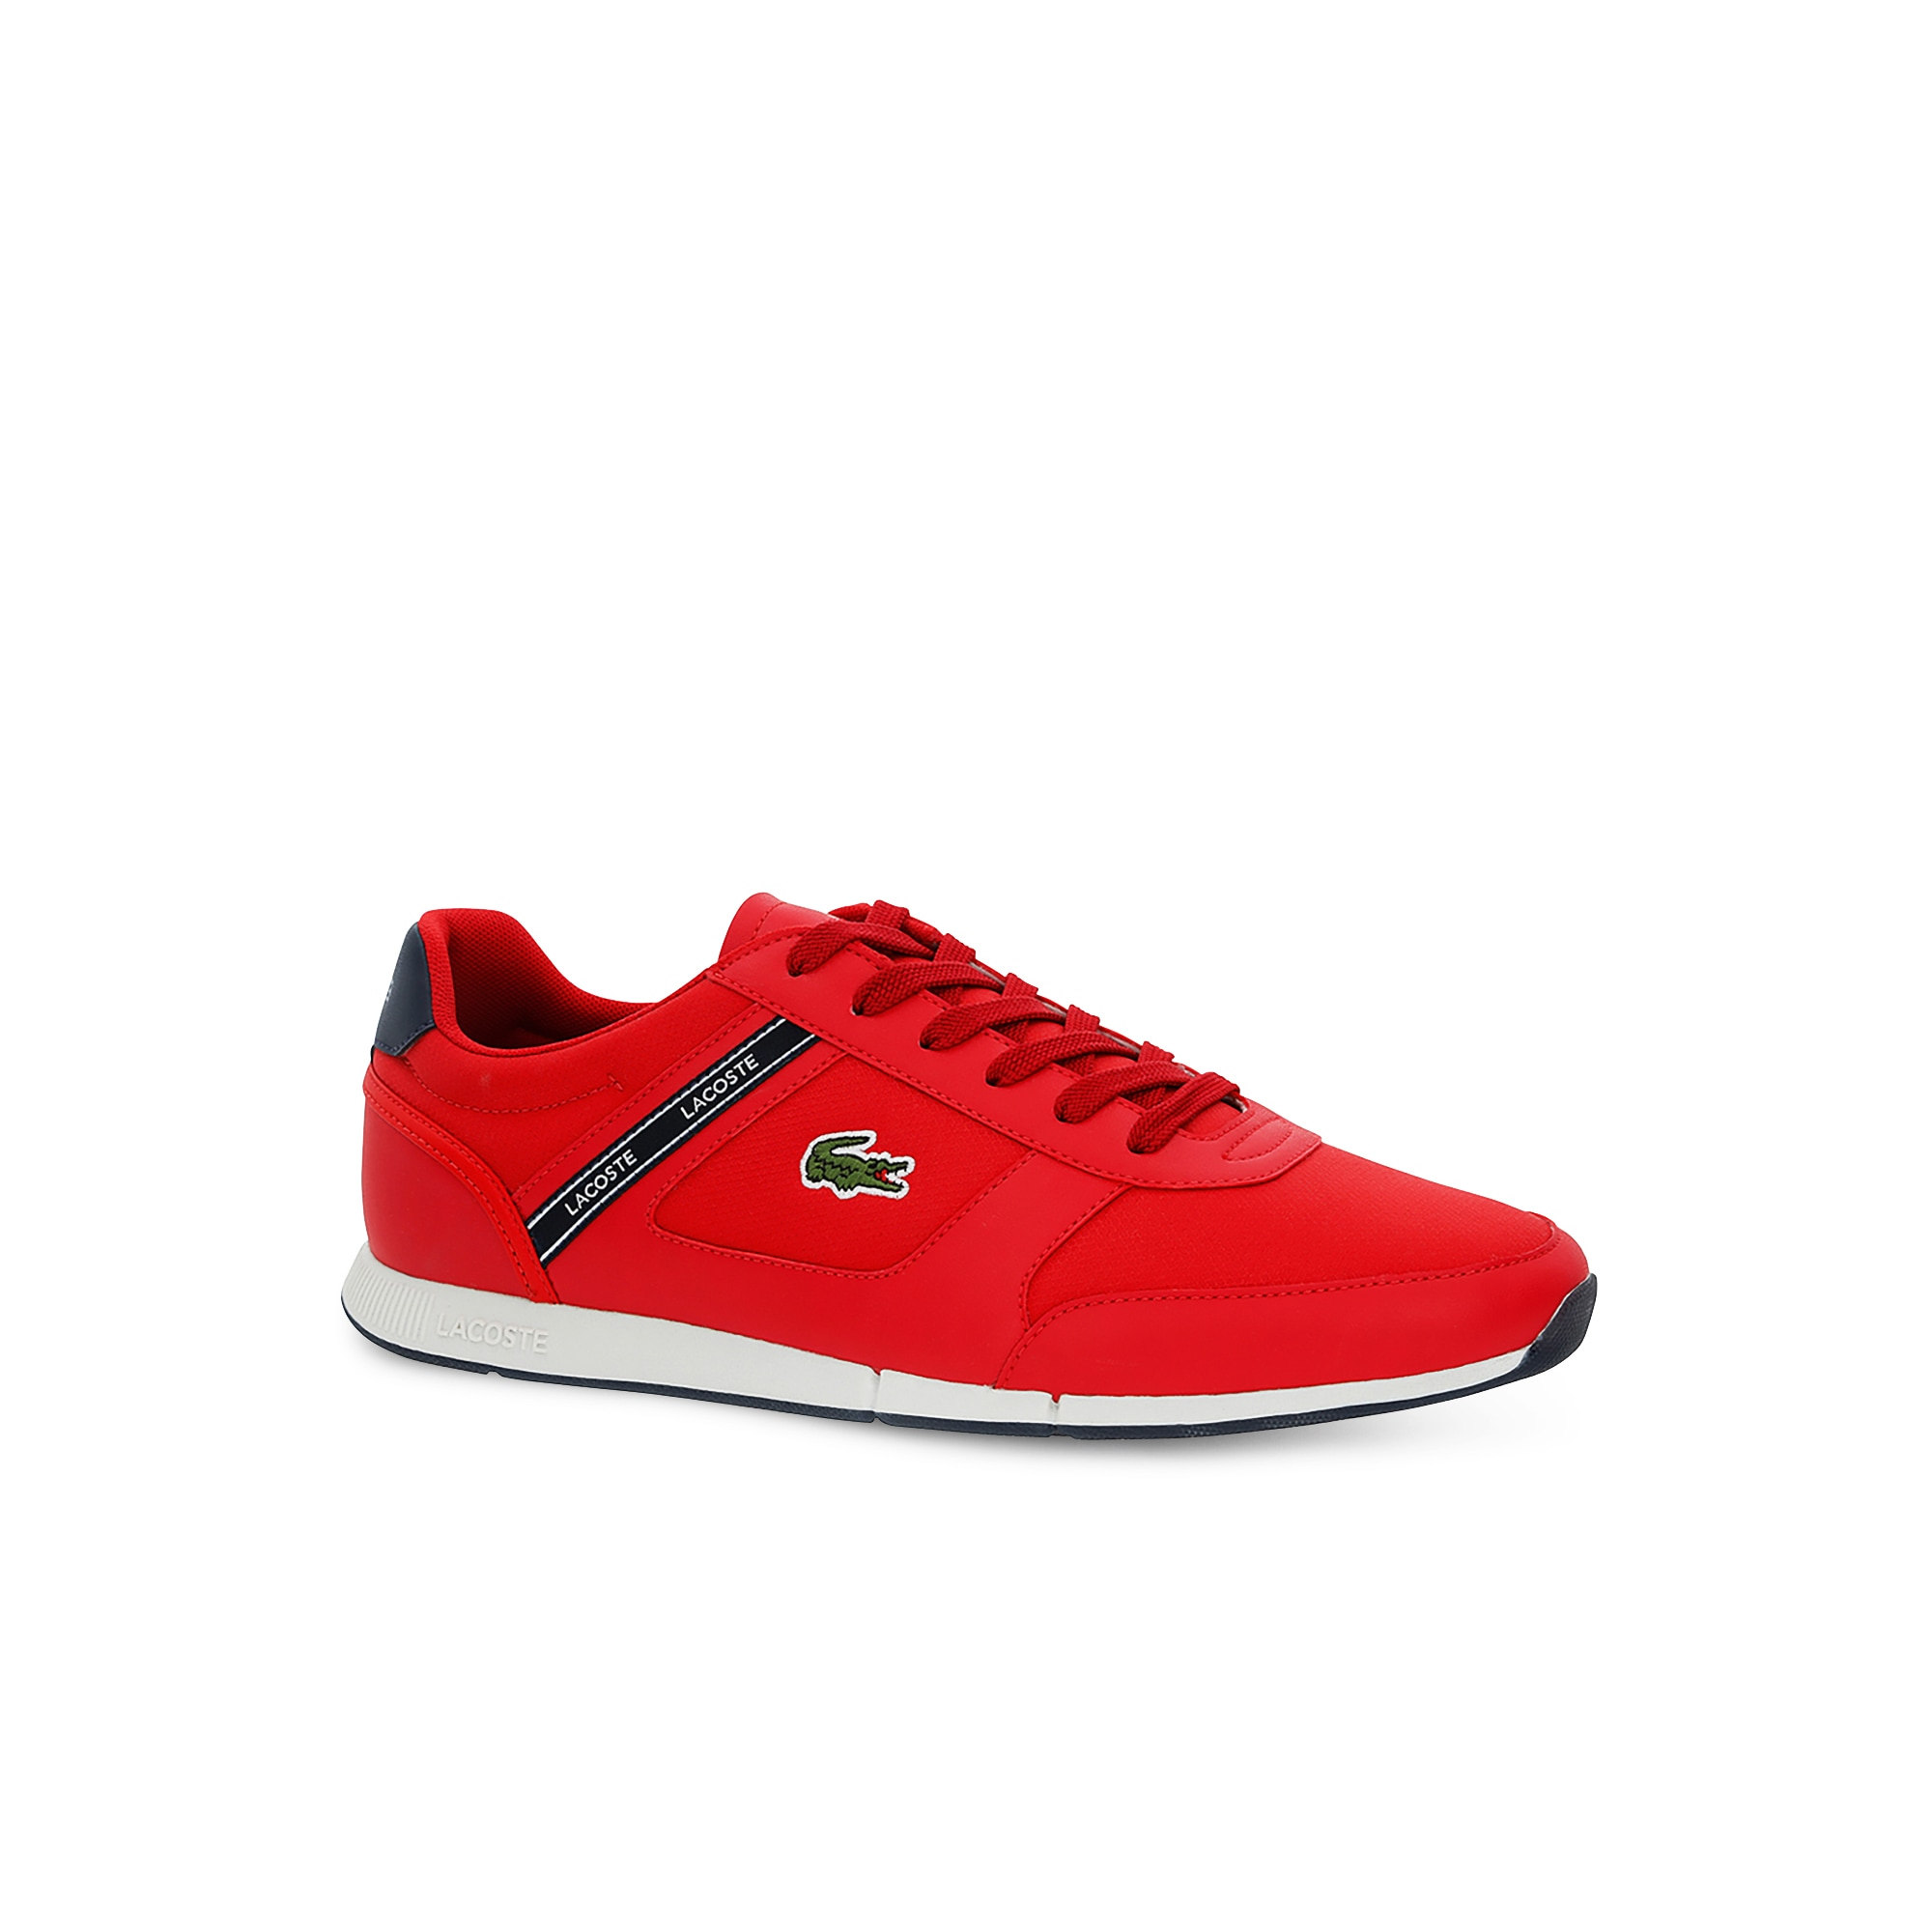 Lacoste Lacoste Homme Homme Chaussures Homme Chaussures Collection Chaussures Homme Collection Collection Lacoste Collection Chaussures dwxYxOP